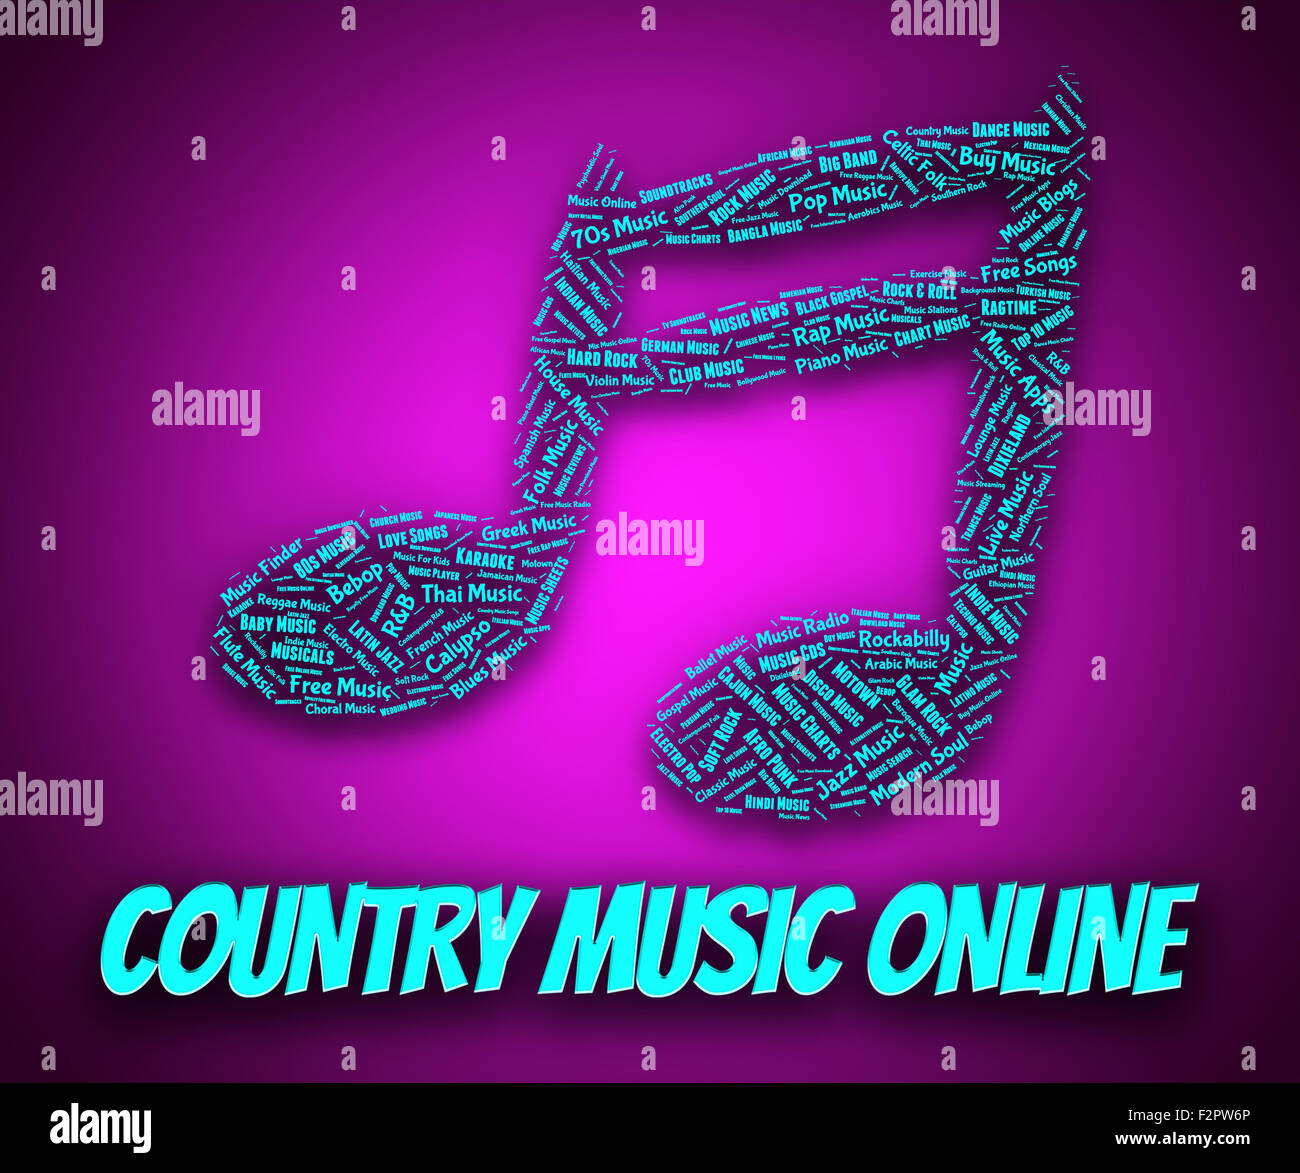 Country Music Online Representing Sound Track And Www Stock